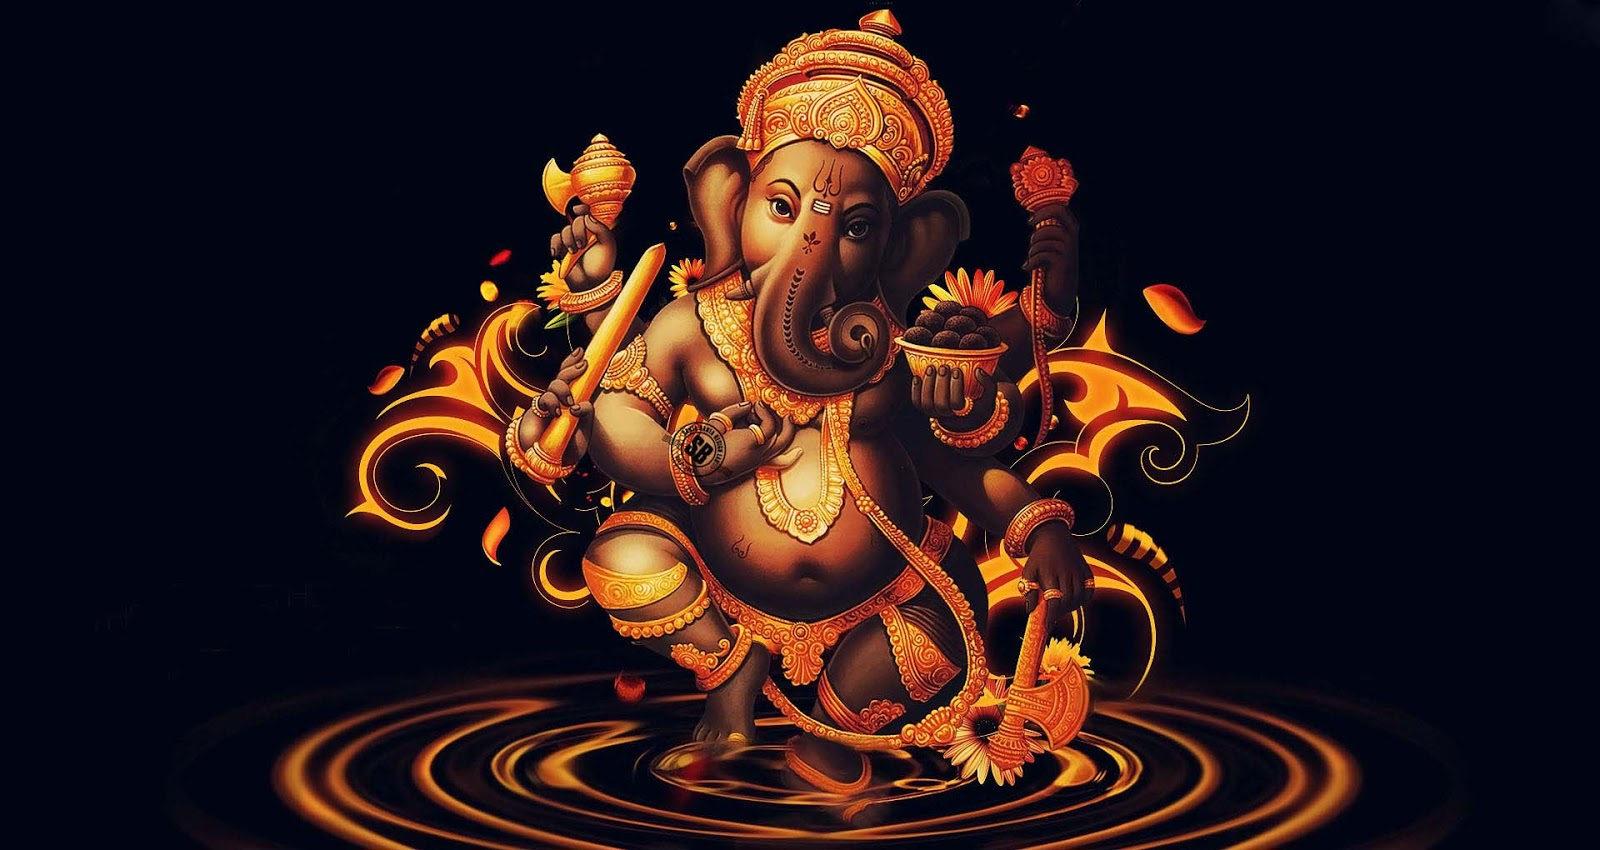 Lord Ganesha Latest Hd Images Free Downloads: Wallpaper HD: Ganesha HD New Wallpapers Free Download